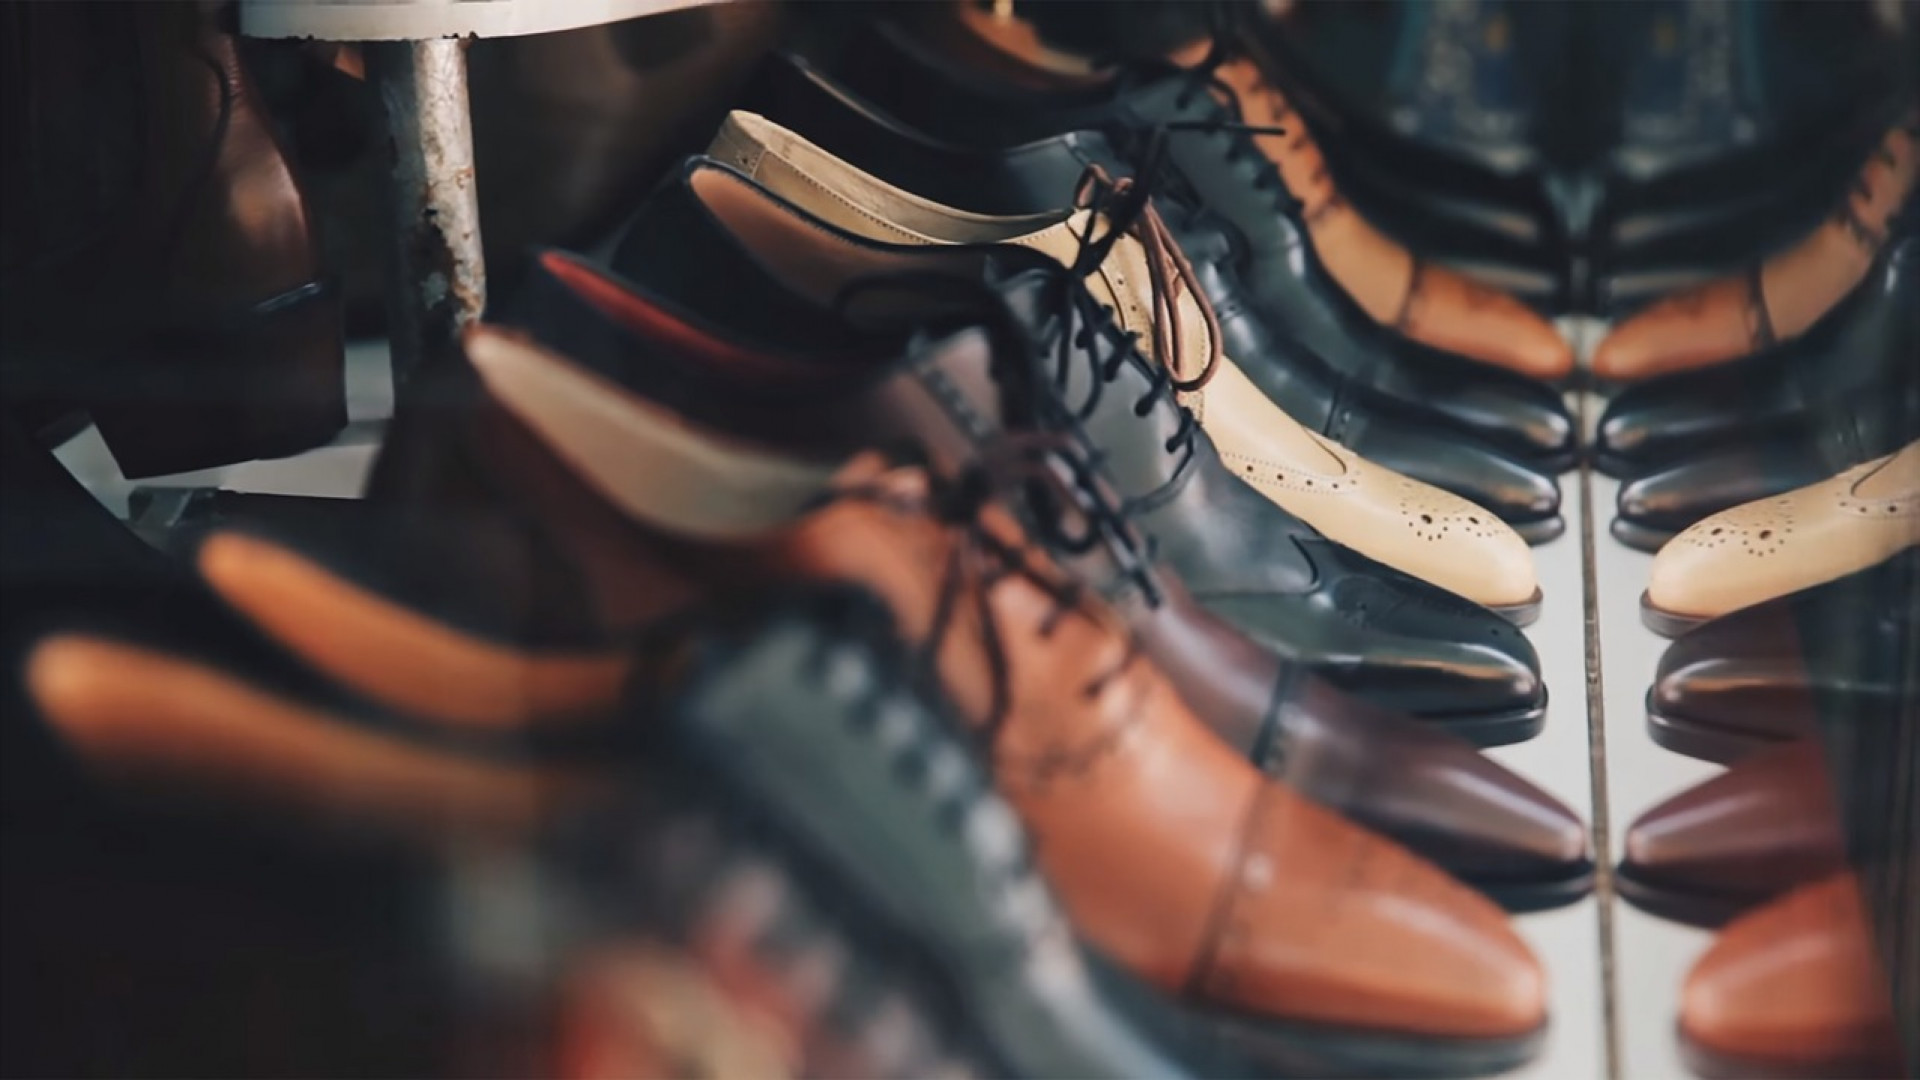 Where to find men's shoes in large size?